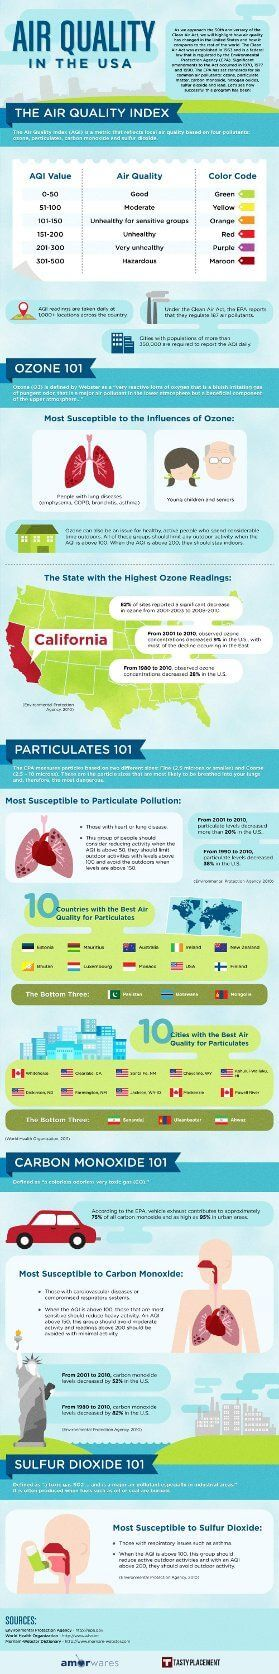 air-quality-in-the-usa_new